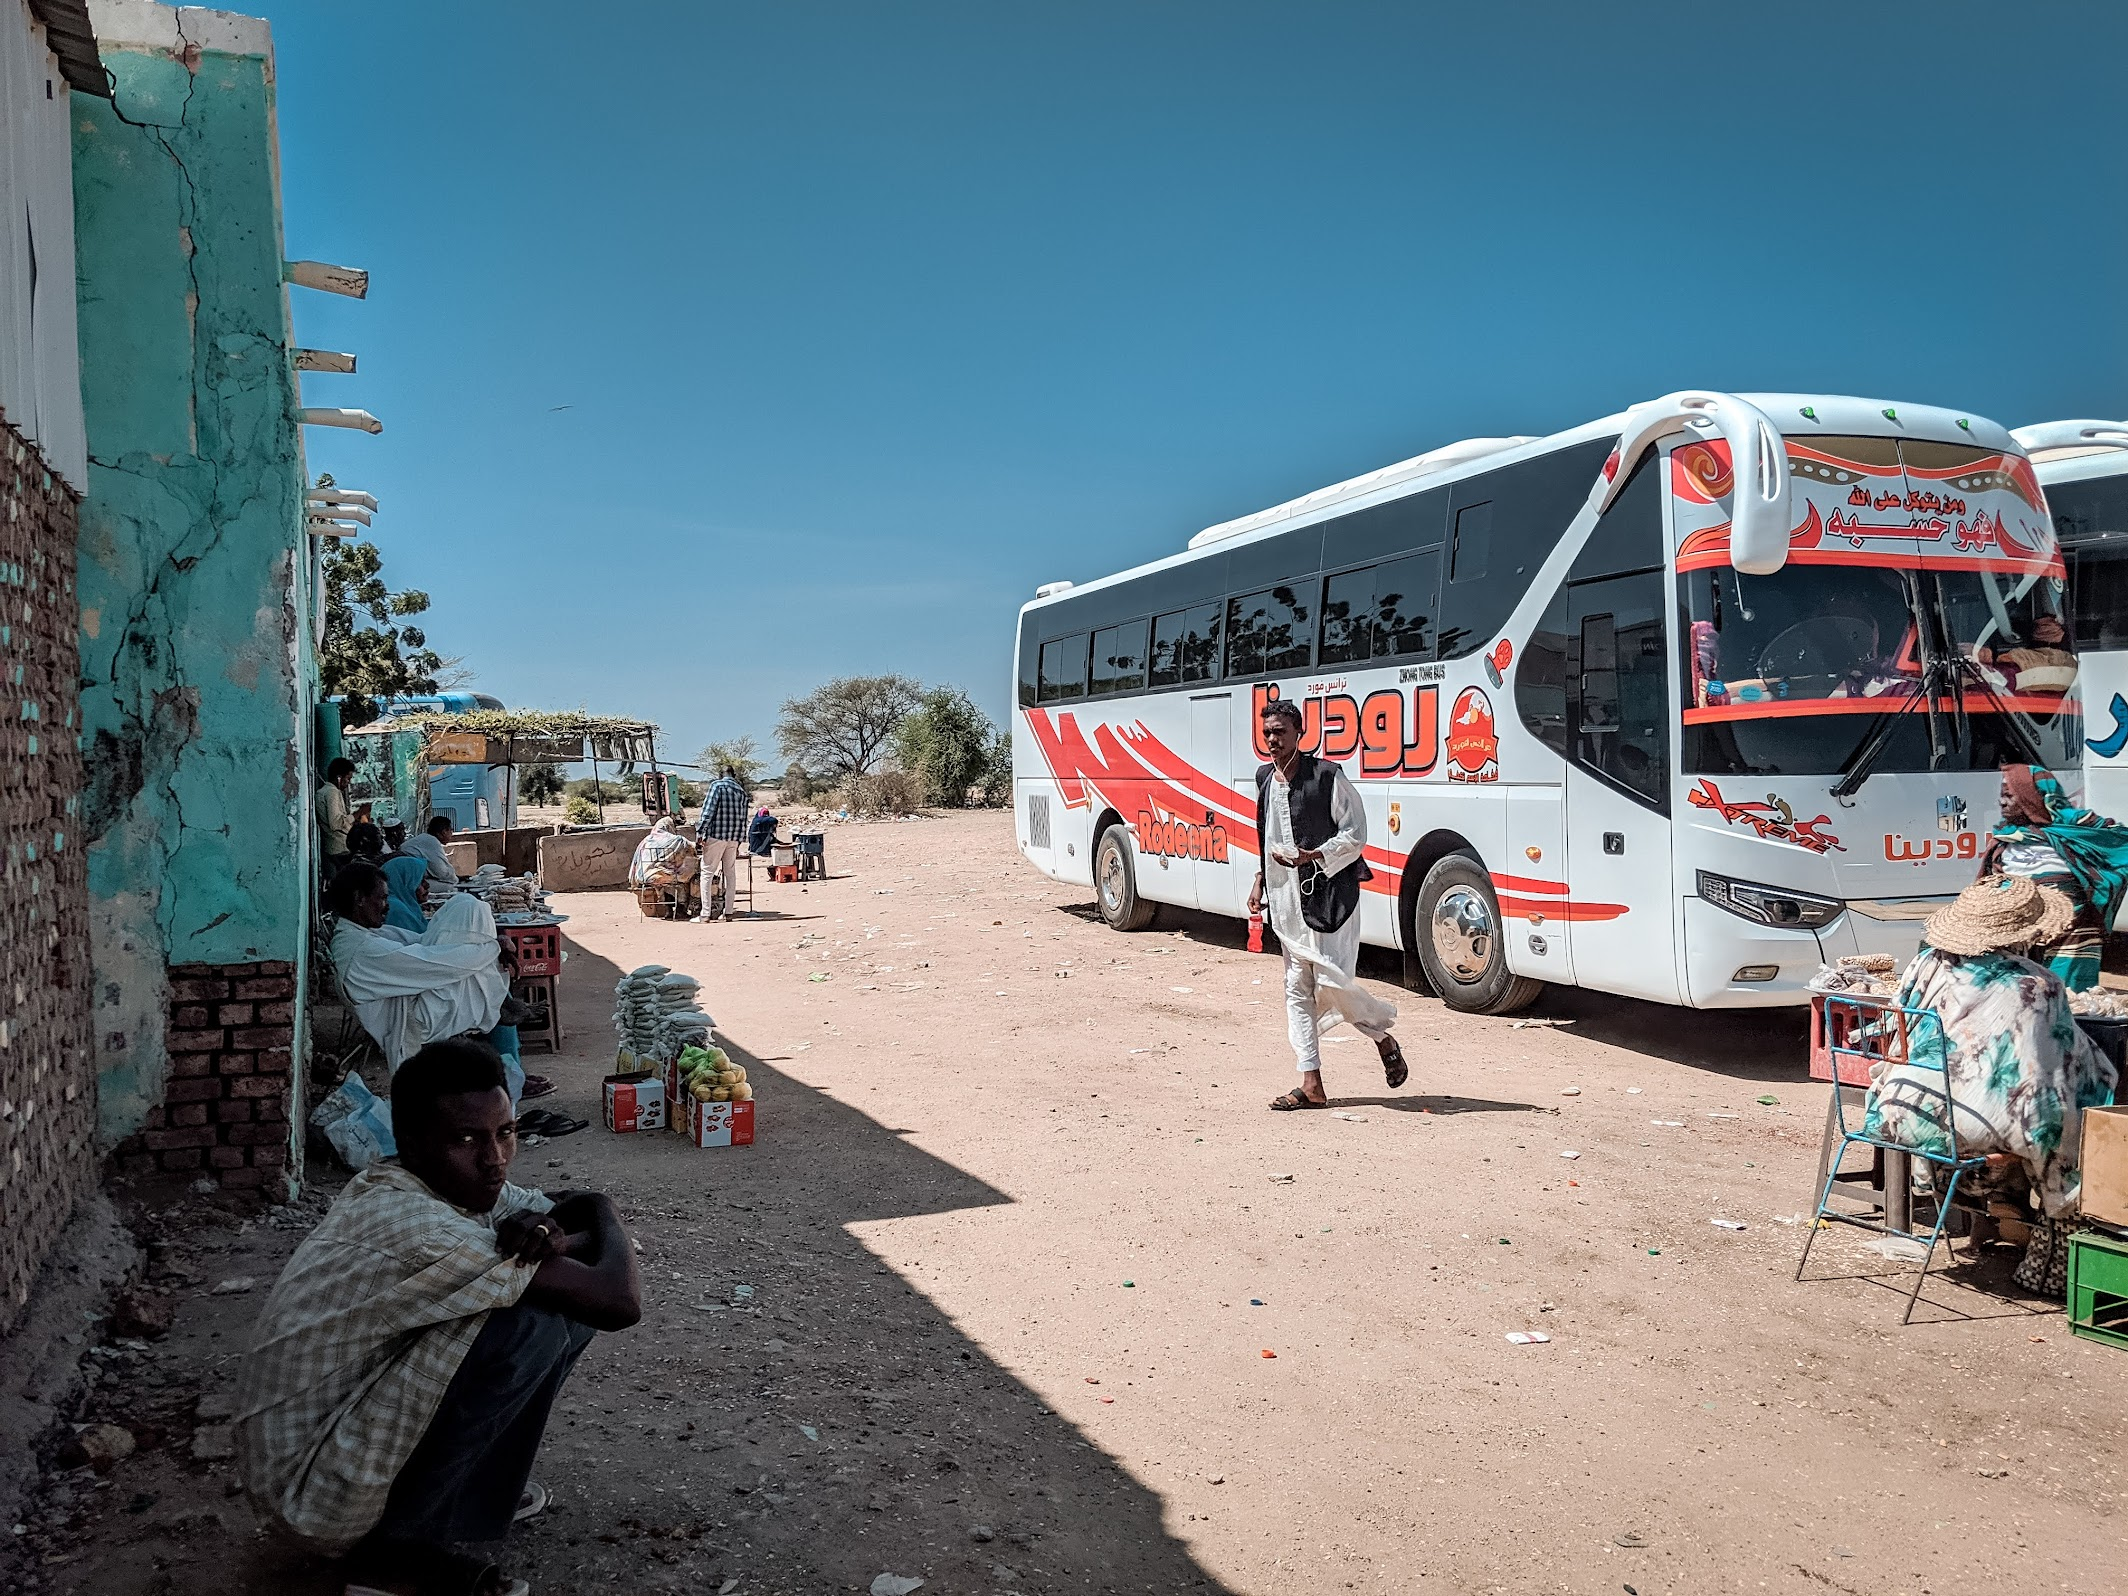 the bus I took from Khartoum to Kassala